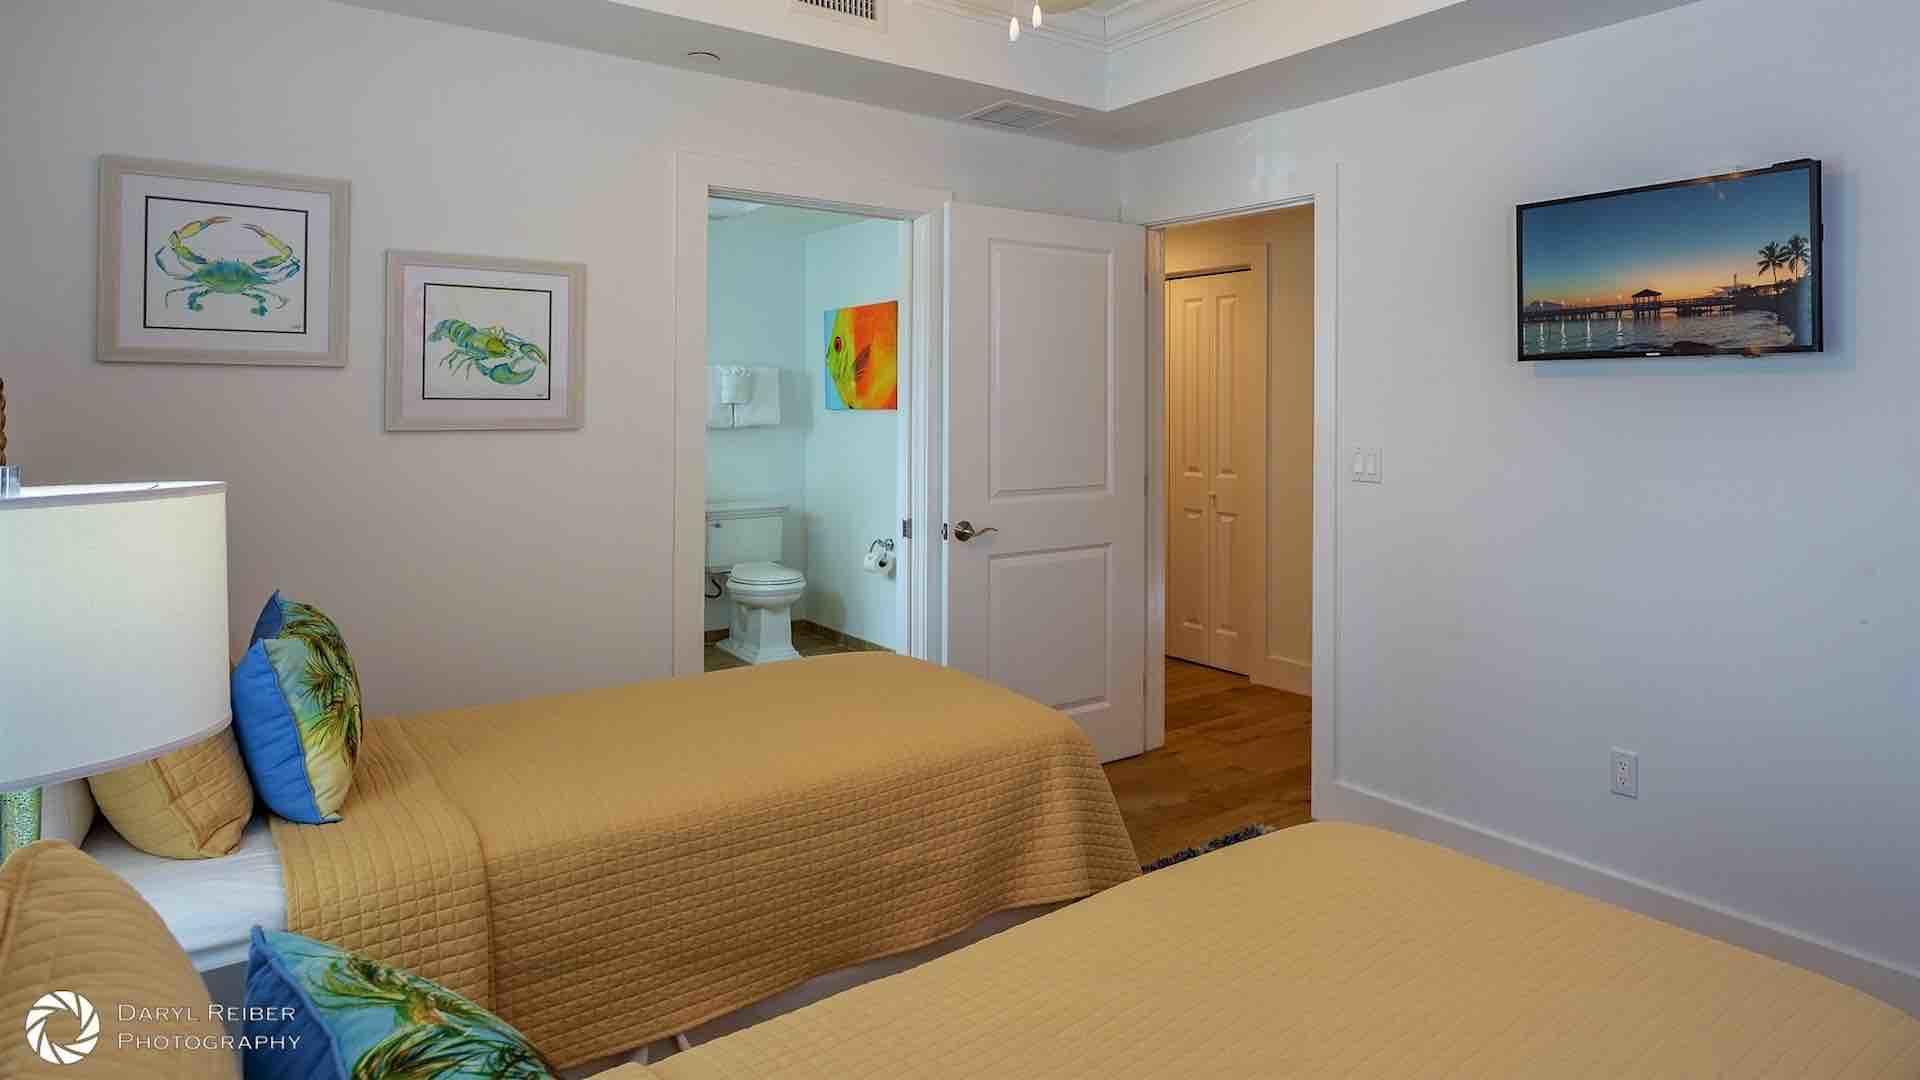 The third bedroom is located on the second floor and has two twin beds that can convert to a King bed upon request...